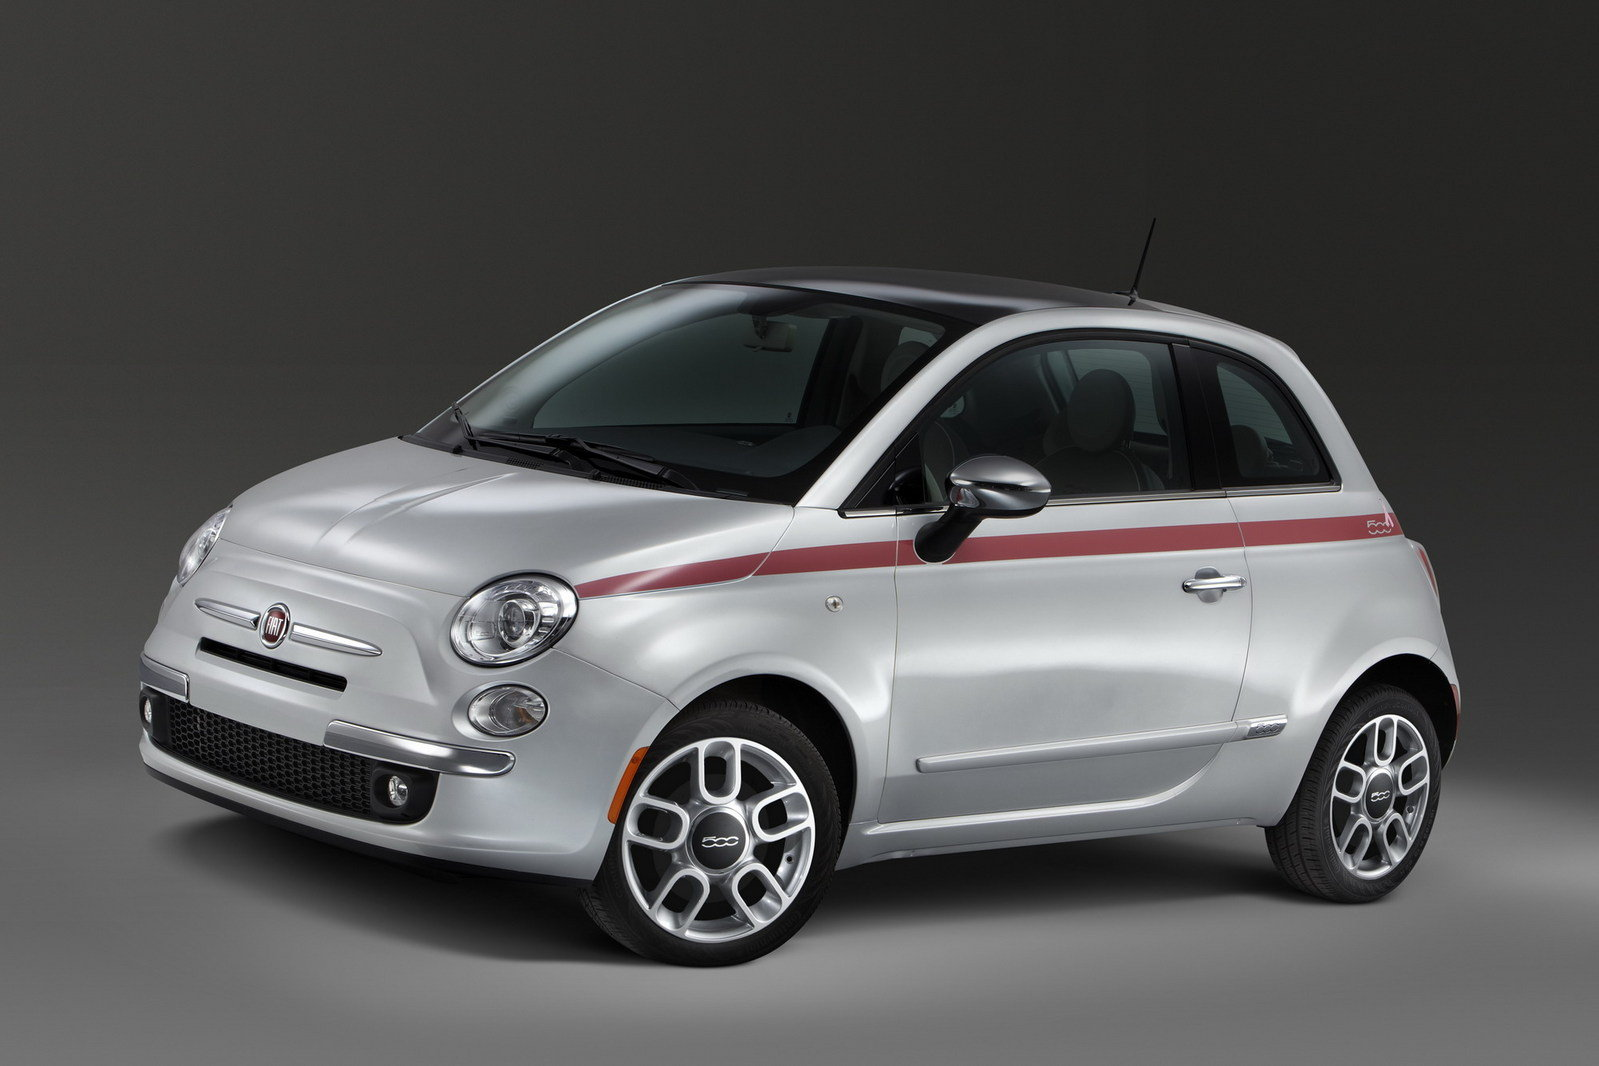 2011 fiat 500 pink ribbon edition dark cars wallpapers. Black Bedroom Furniture Sets. Home Design Ideas